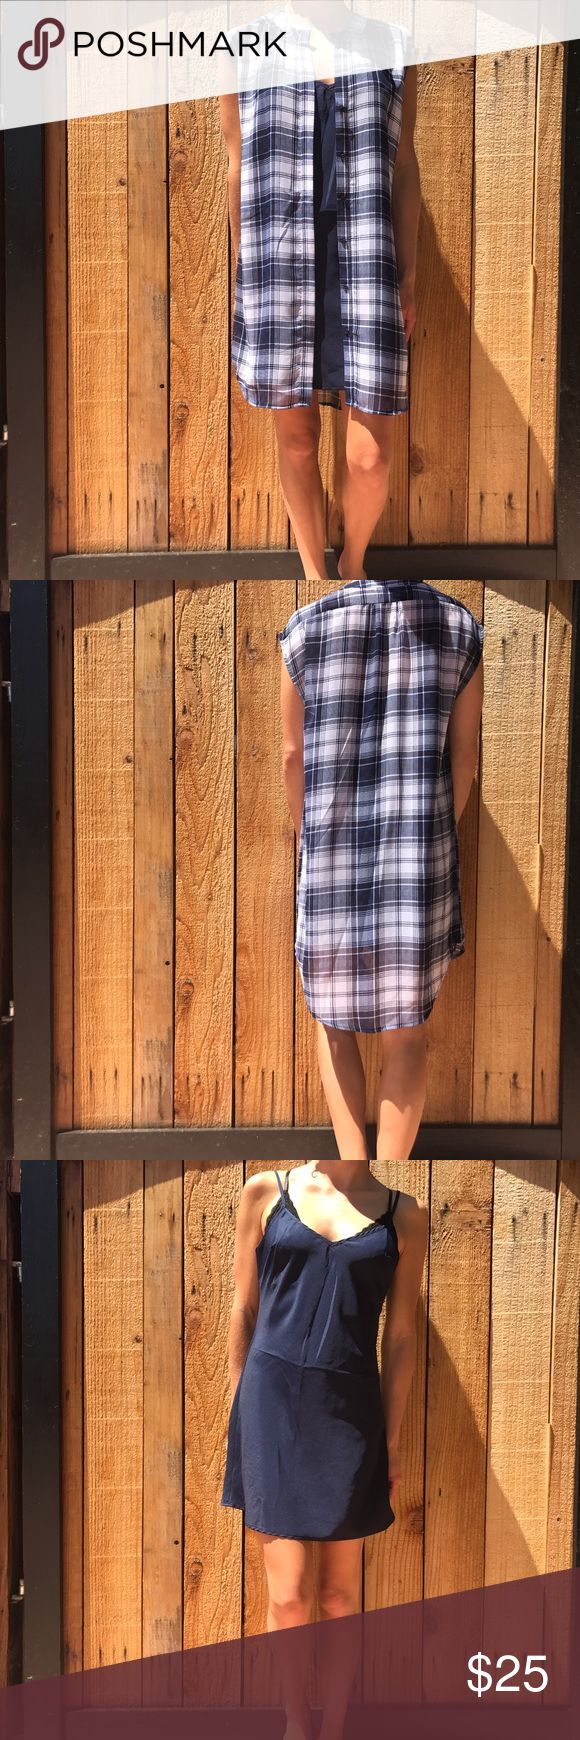 BB Dakota Shirt Dress🎉30% OFF ANY BUNDLE BB Dakota Flannel Cut Off Shirt Dress. New without tags. Comes with matching navy slip. Adjustable straps on the slip and the flannel print top buttons up front. Bundle and save. No trades   #bbdakota #flannel #shirtdress BB Dakota Dresses Mini